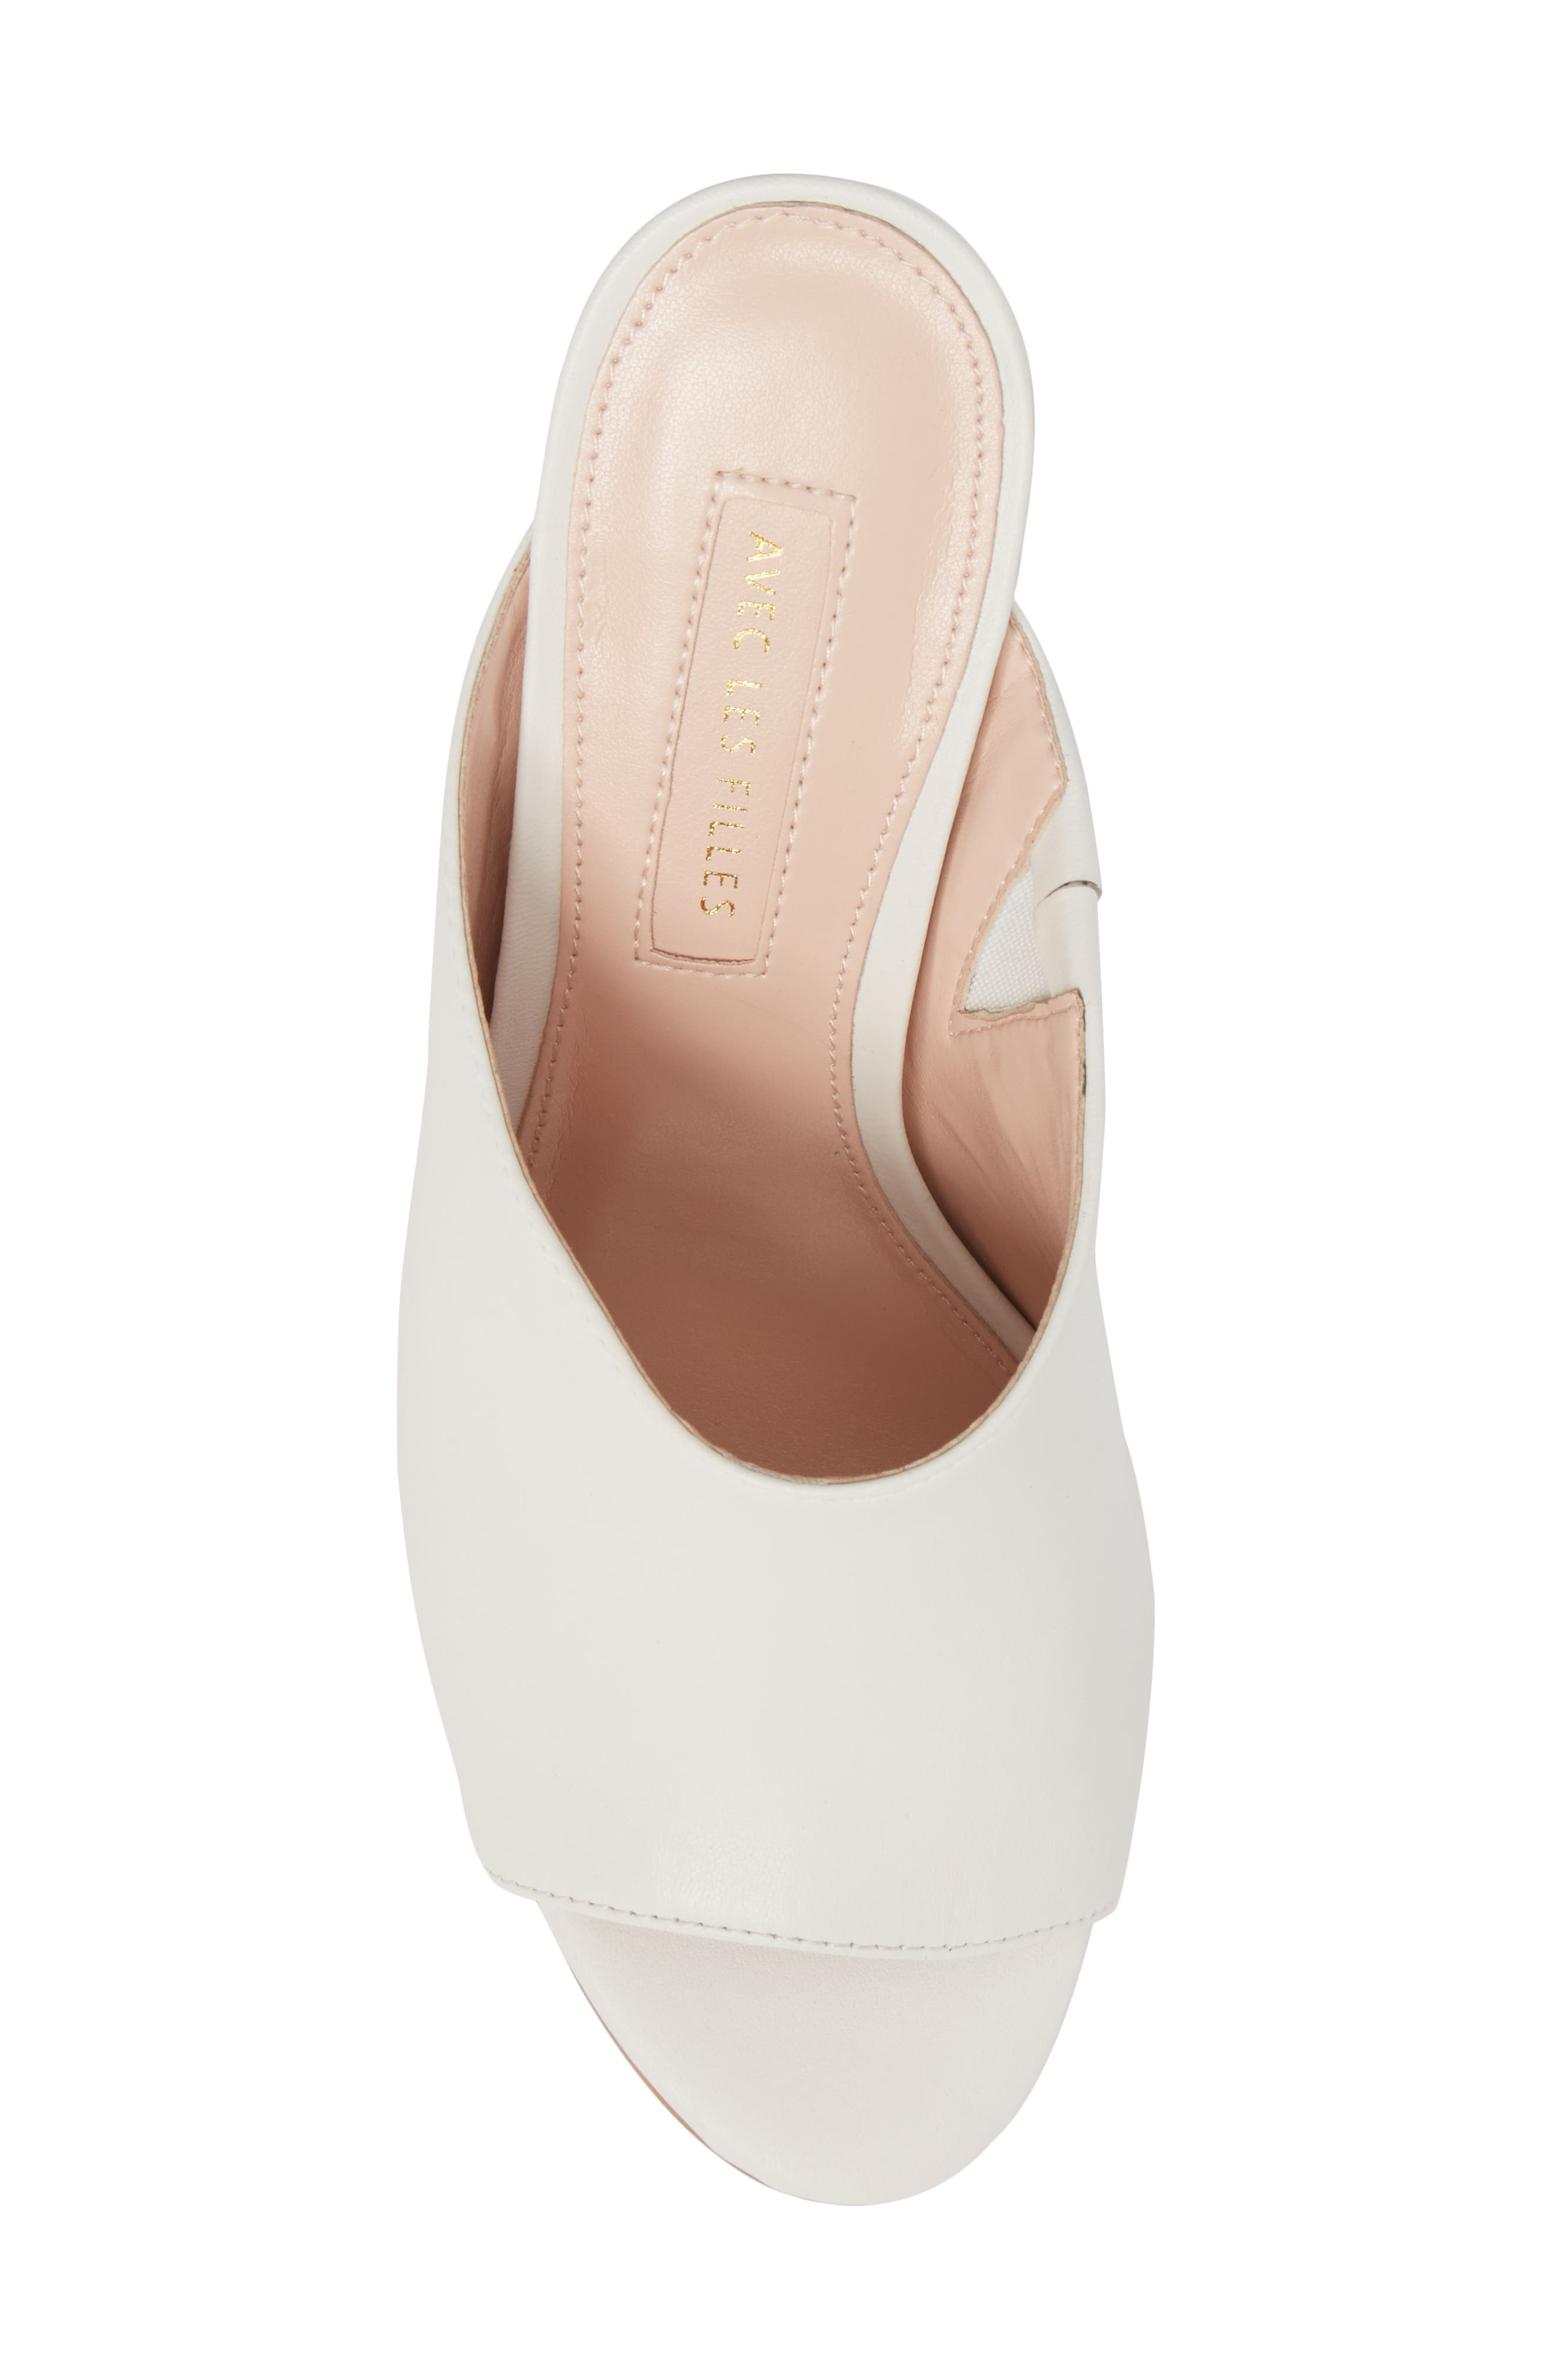 Jazz Off Sandal,                             Alternate thumbnail 5, color,                             Off White Leather